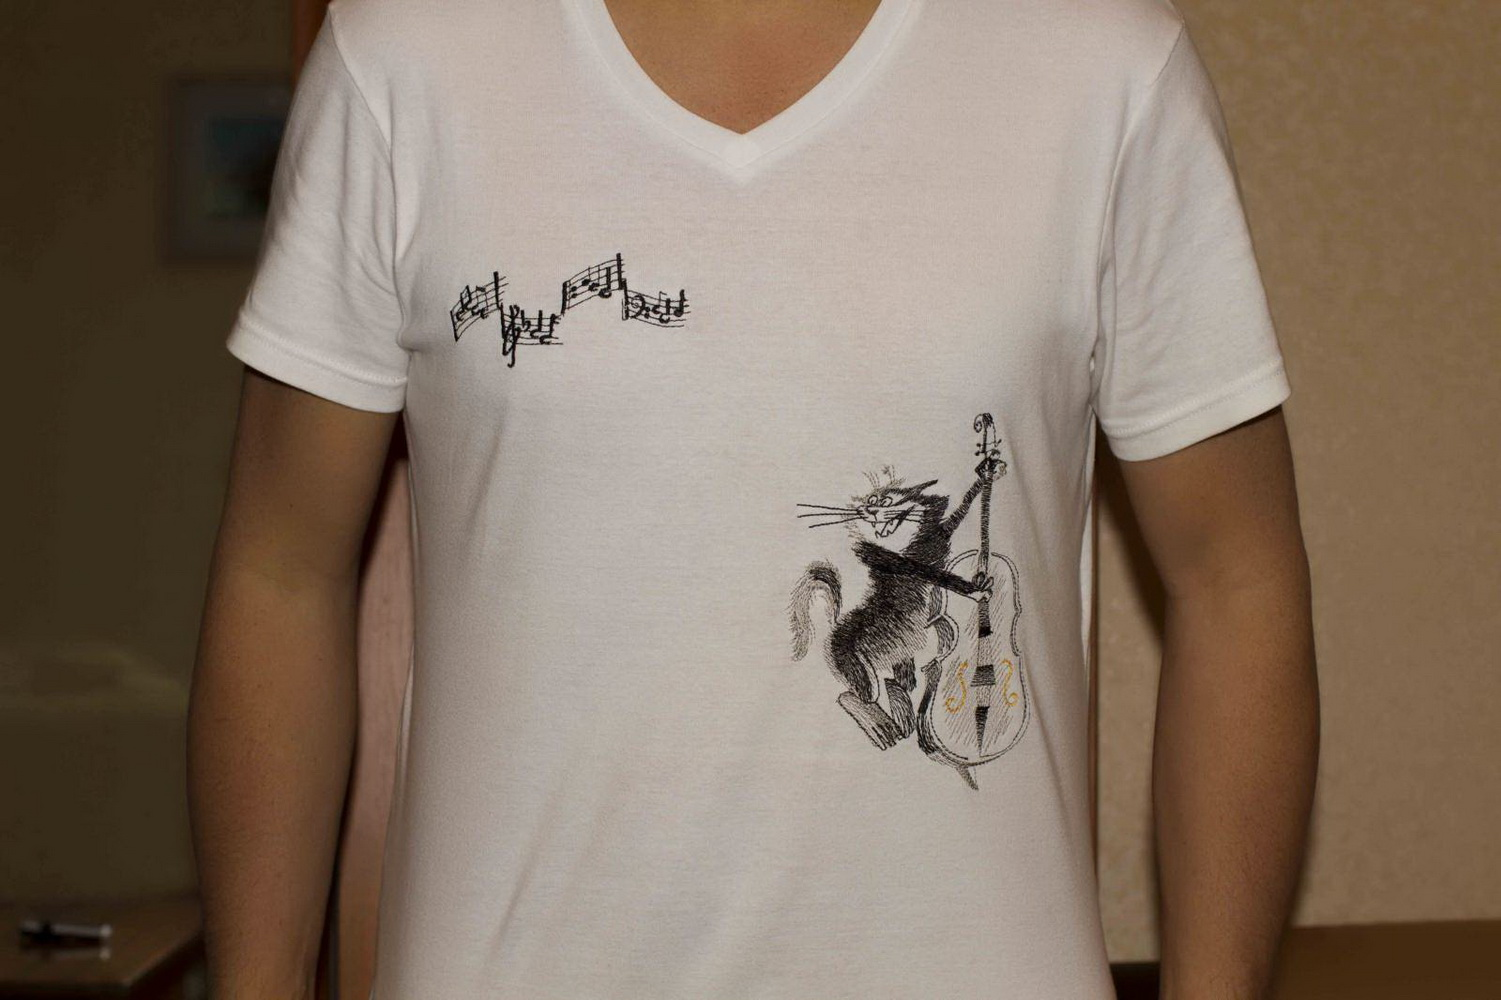 Cat with a contrabass design on t-shirt embroidered